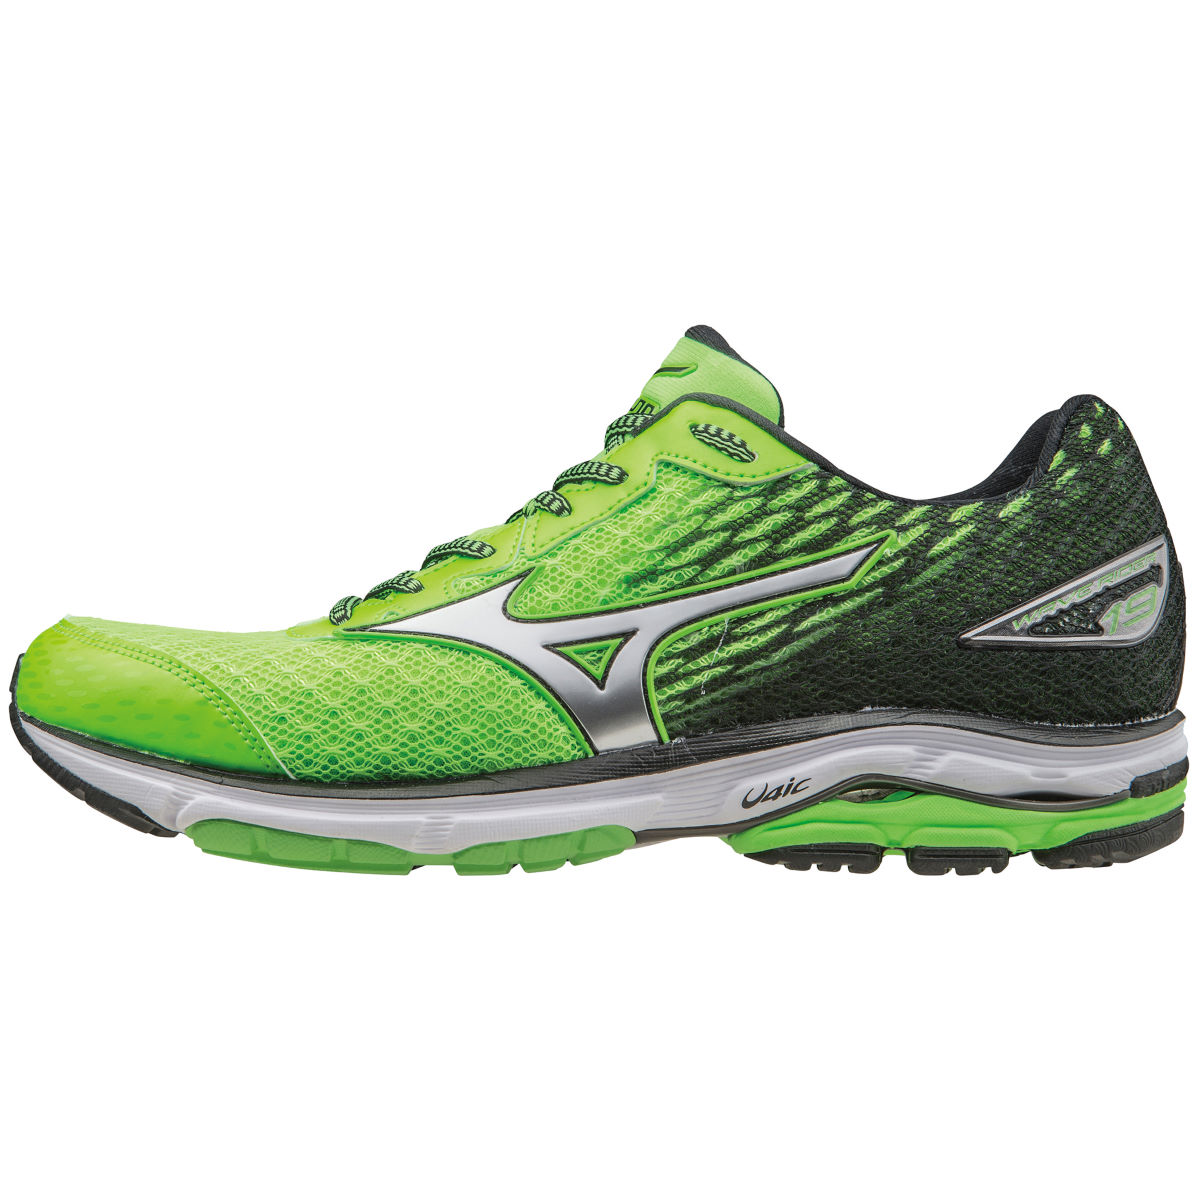 Chaussures Mizuno Wave Rider 19 (PE16) - 10 UK Green/Silver/Black Chaussures de running amorties